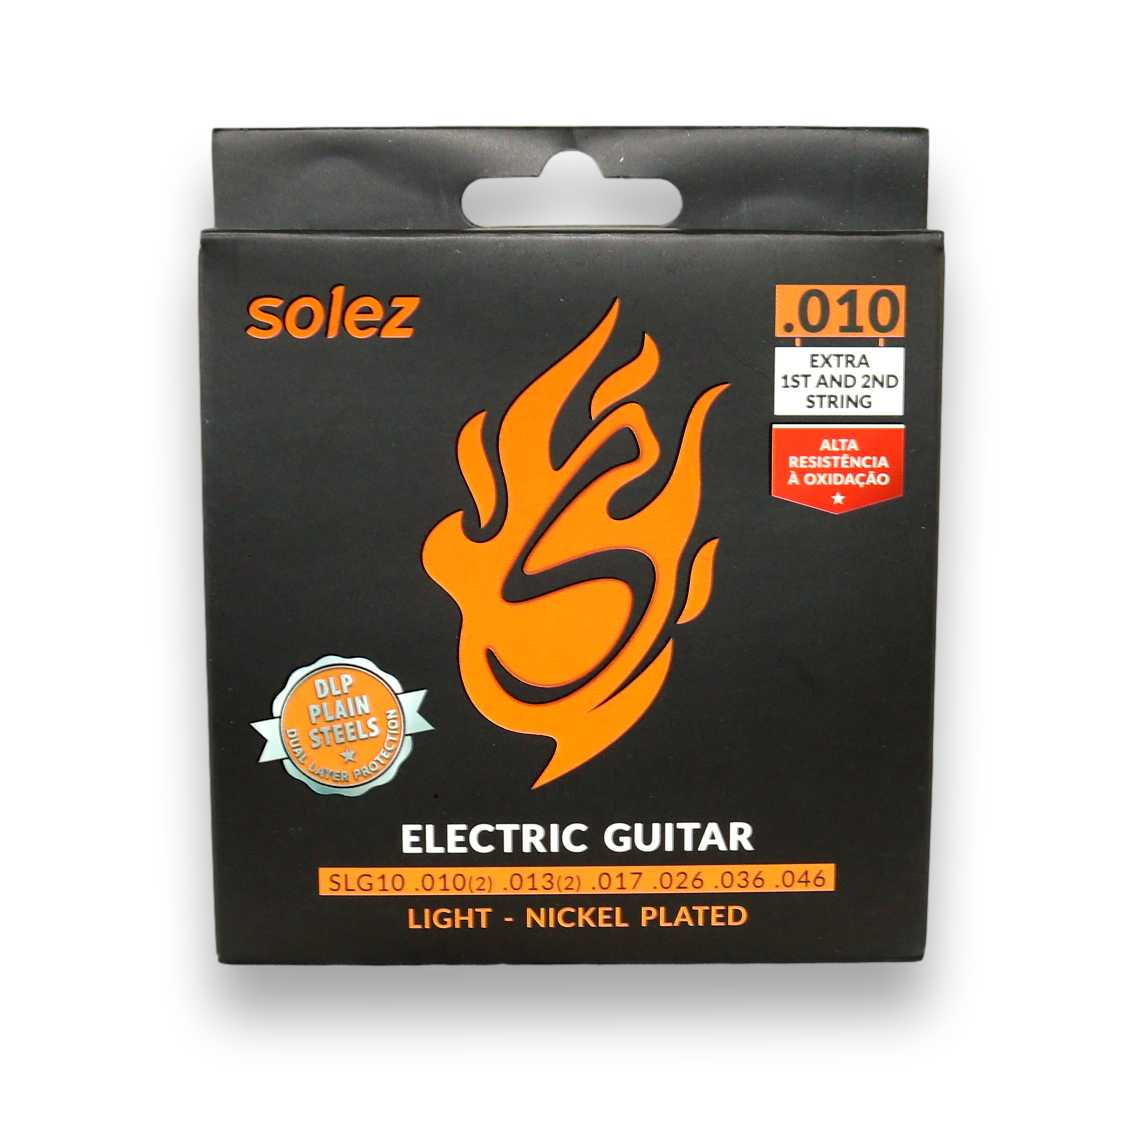 Encordoamento Guitarra Solez 010 SLG10